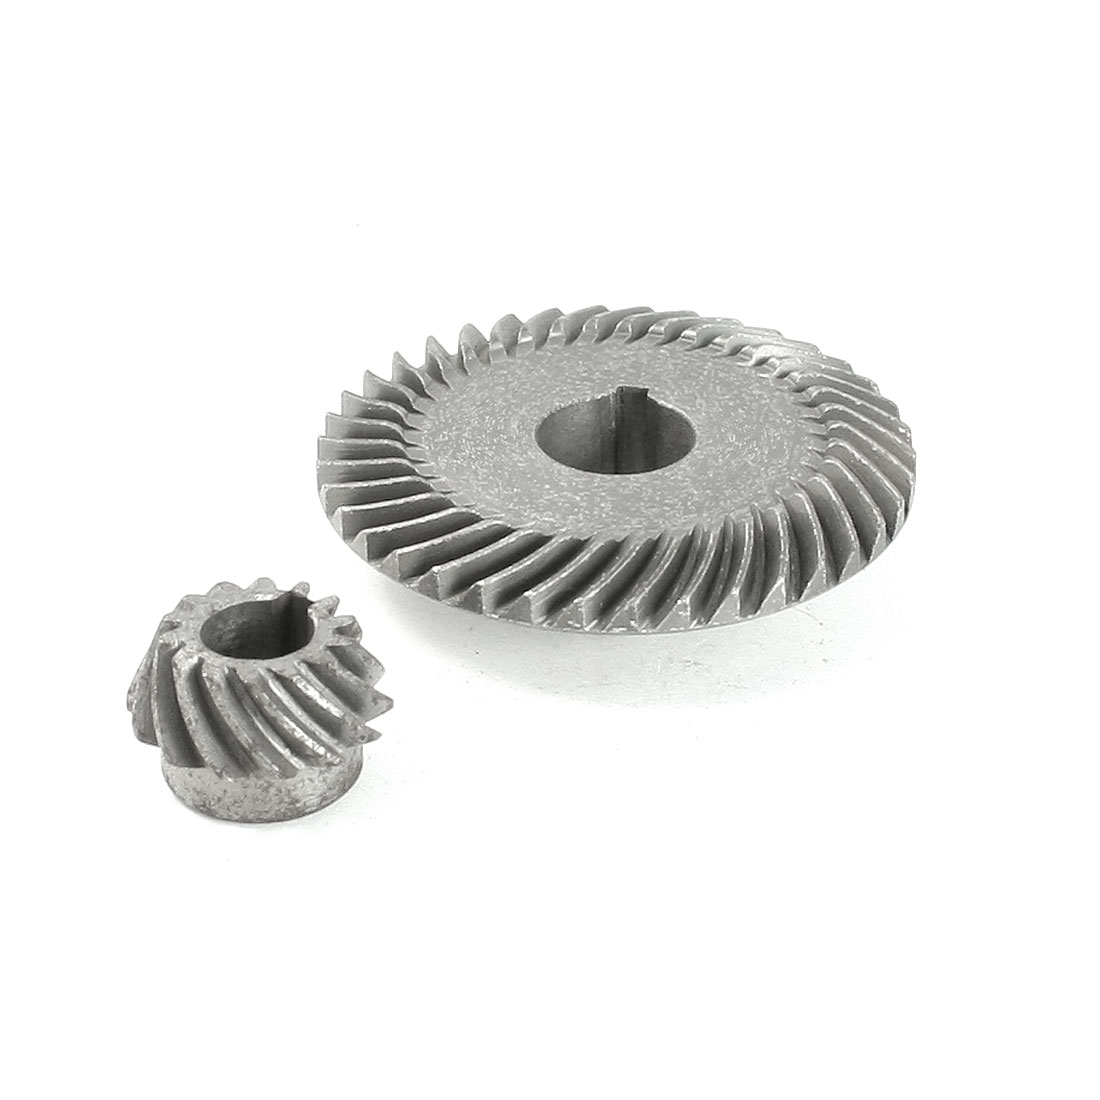 Repair Part Spiral Bevel Gear Pinion Set for Makita 150 Angle Grinder